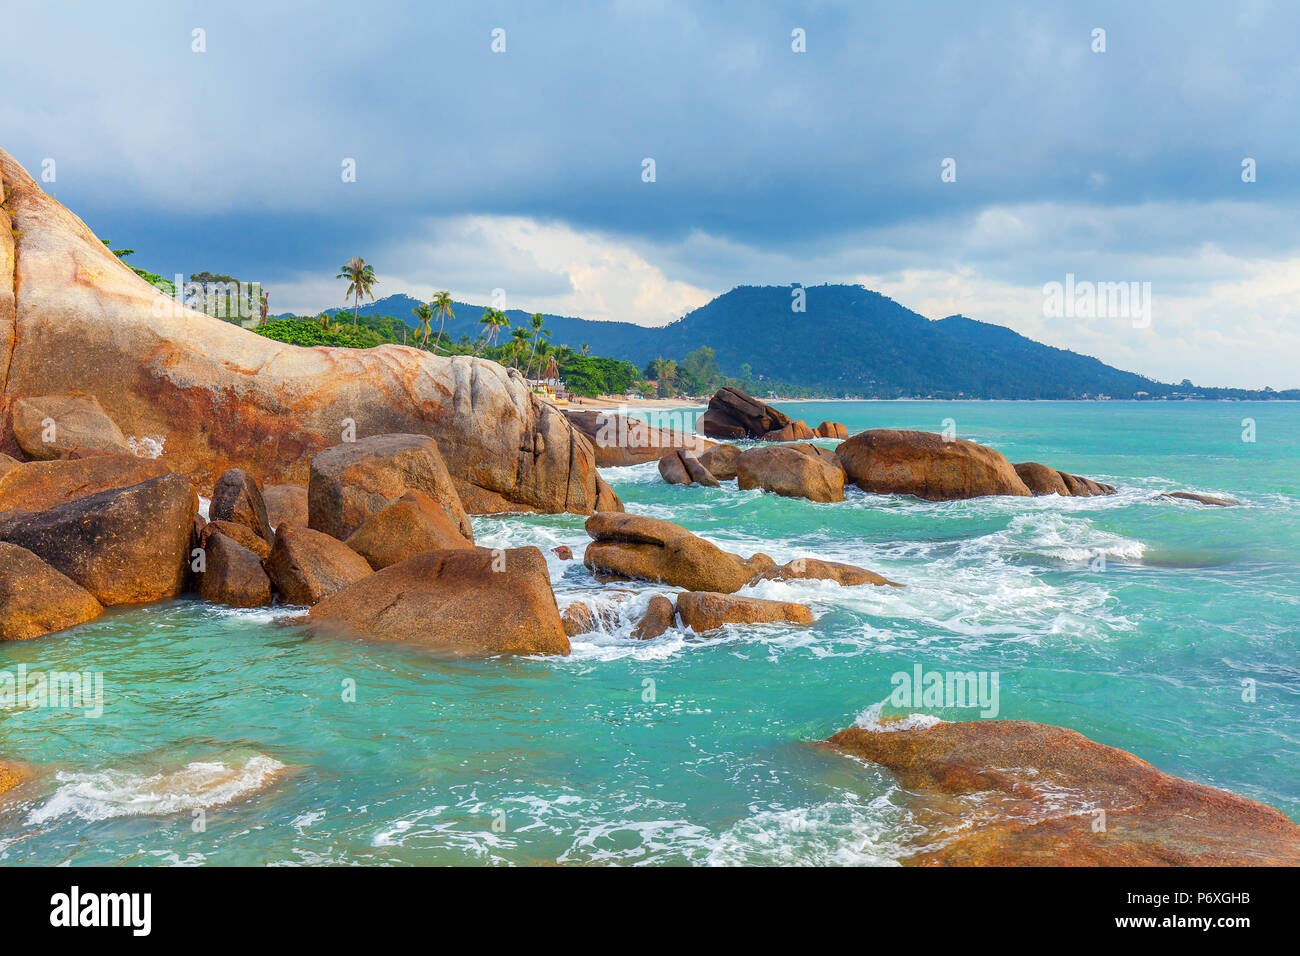 Azure sea and the red rocks of the island of Koh Samui in Thailand. - Stock Image